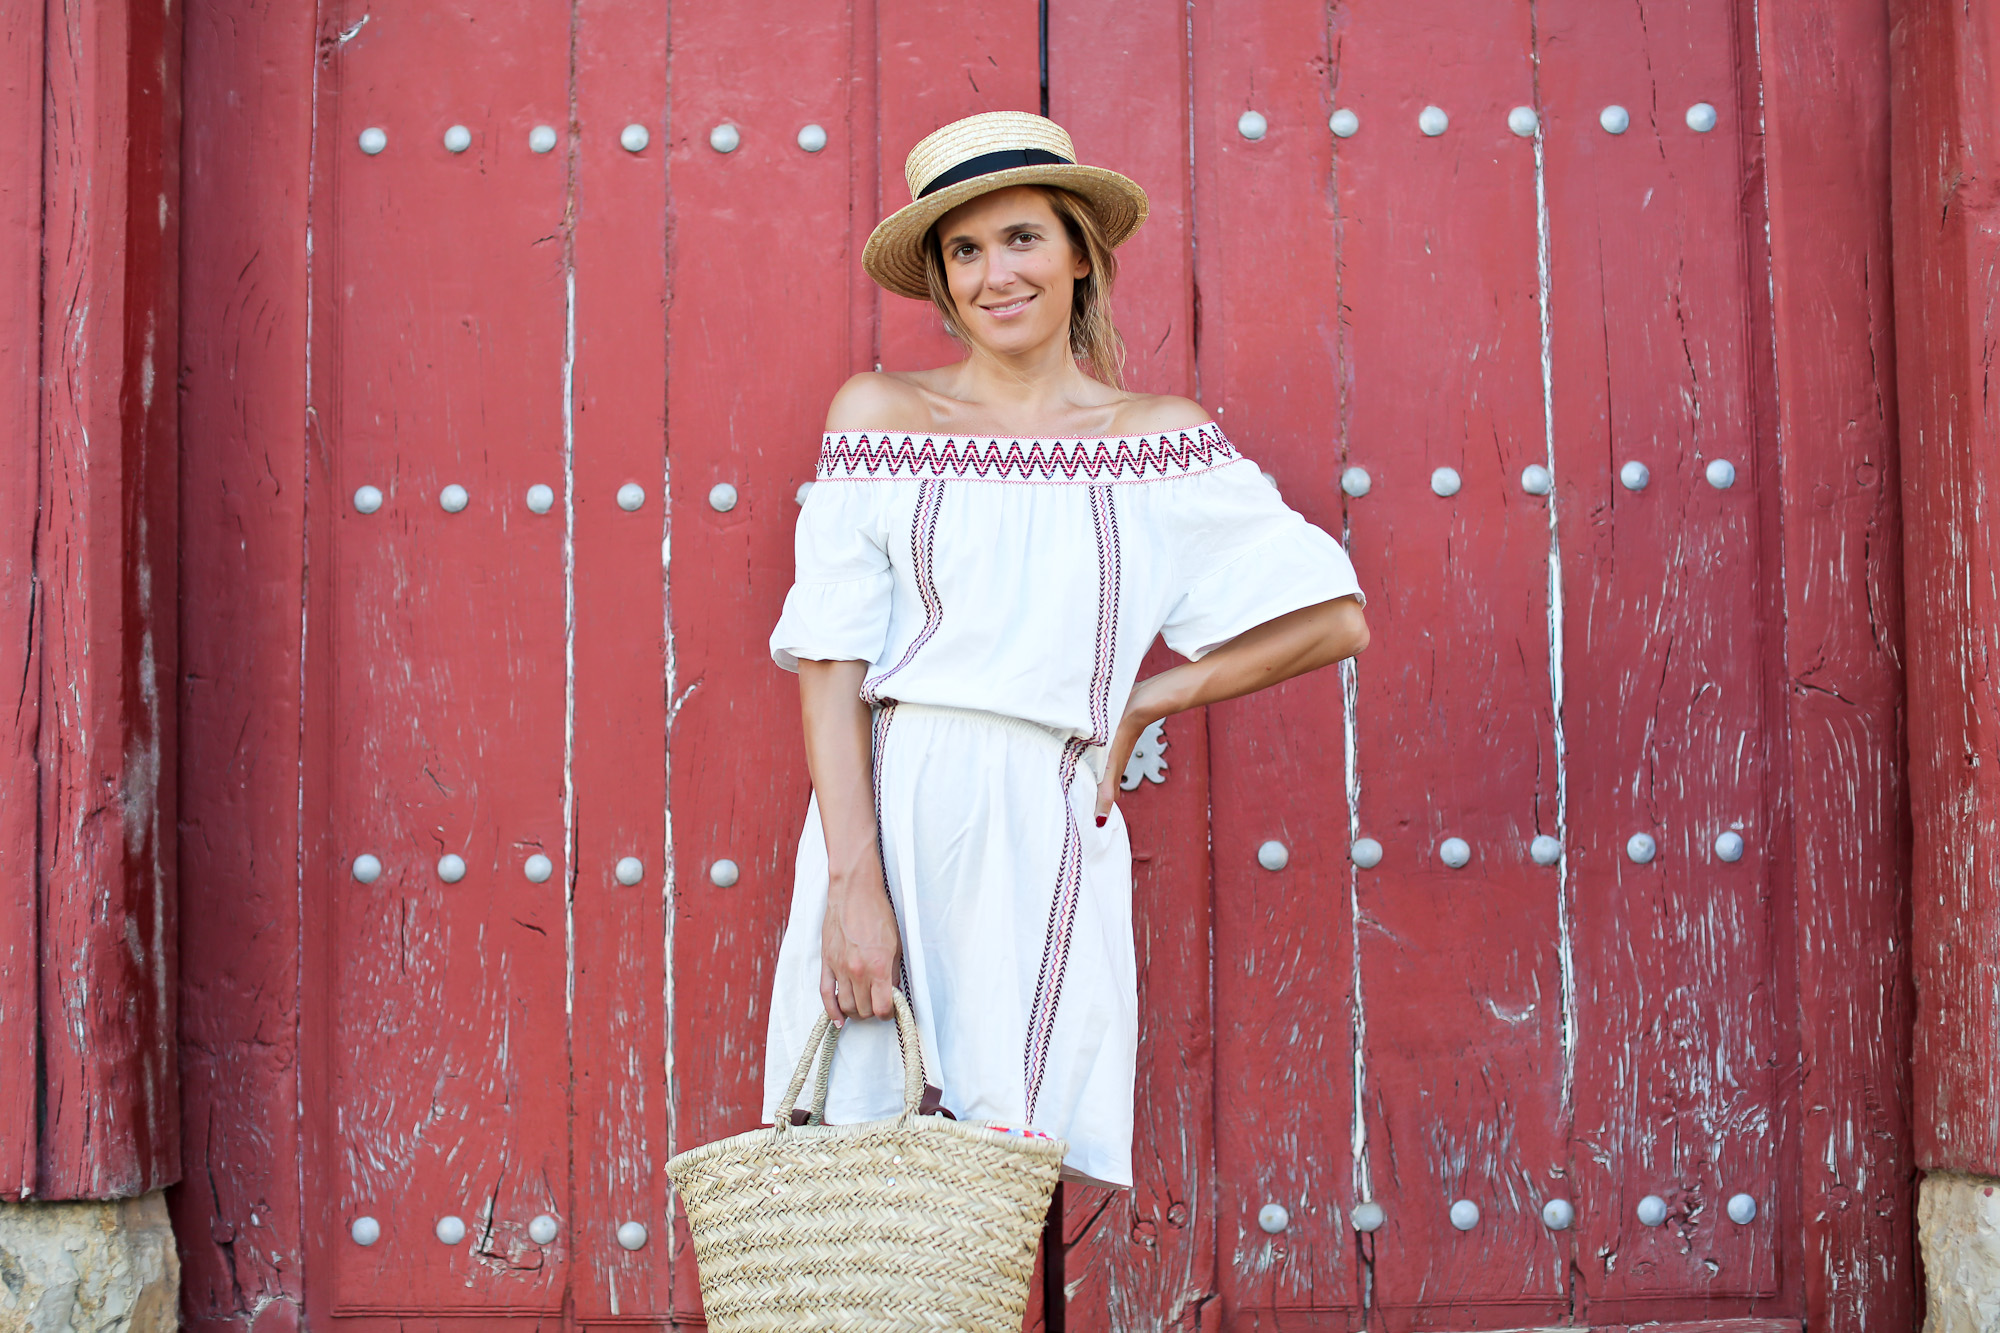 Clochet_streetstyle_chicwish_mexicandress_eseoese_espadrilles_cannotier-6